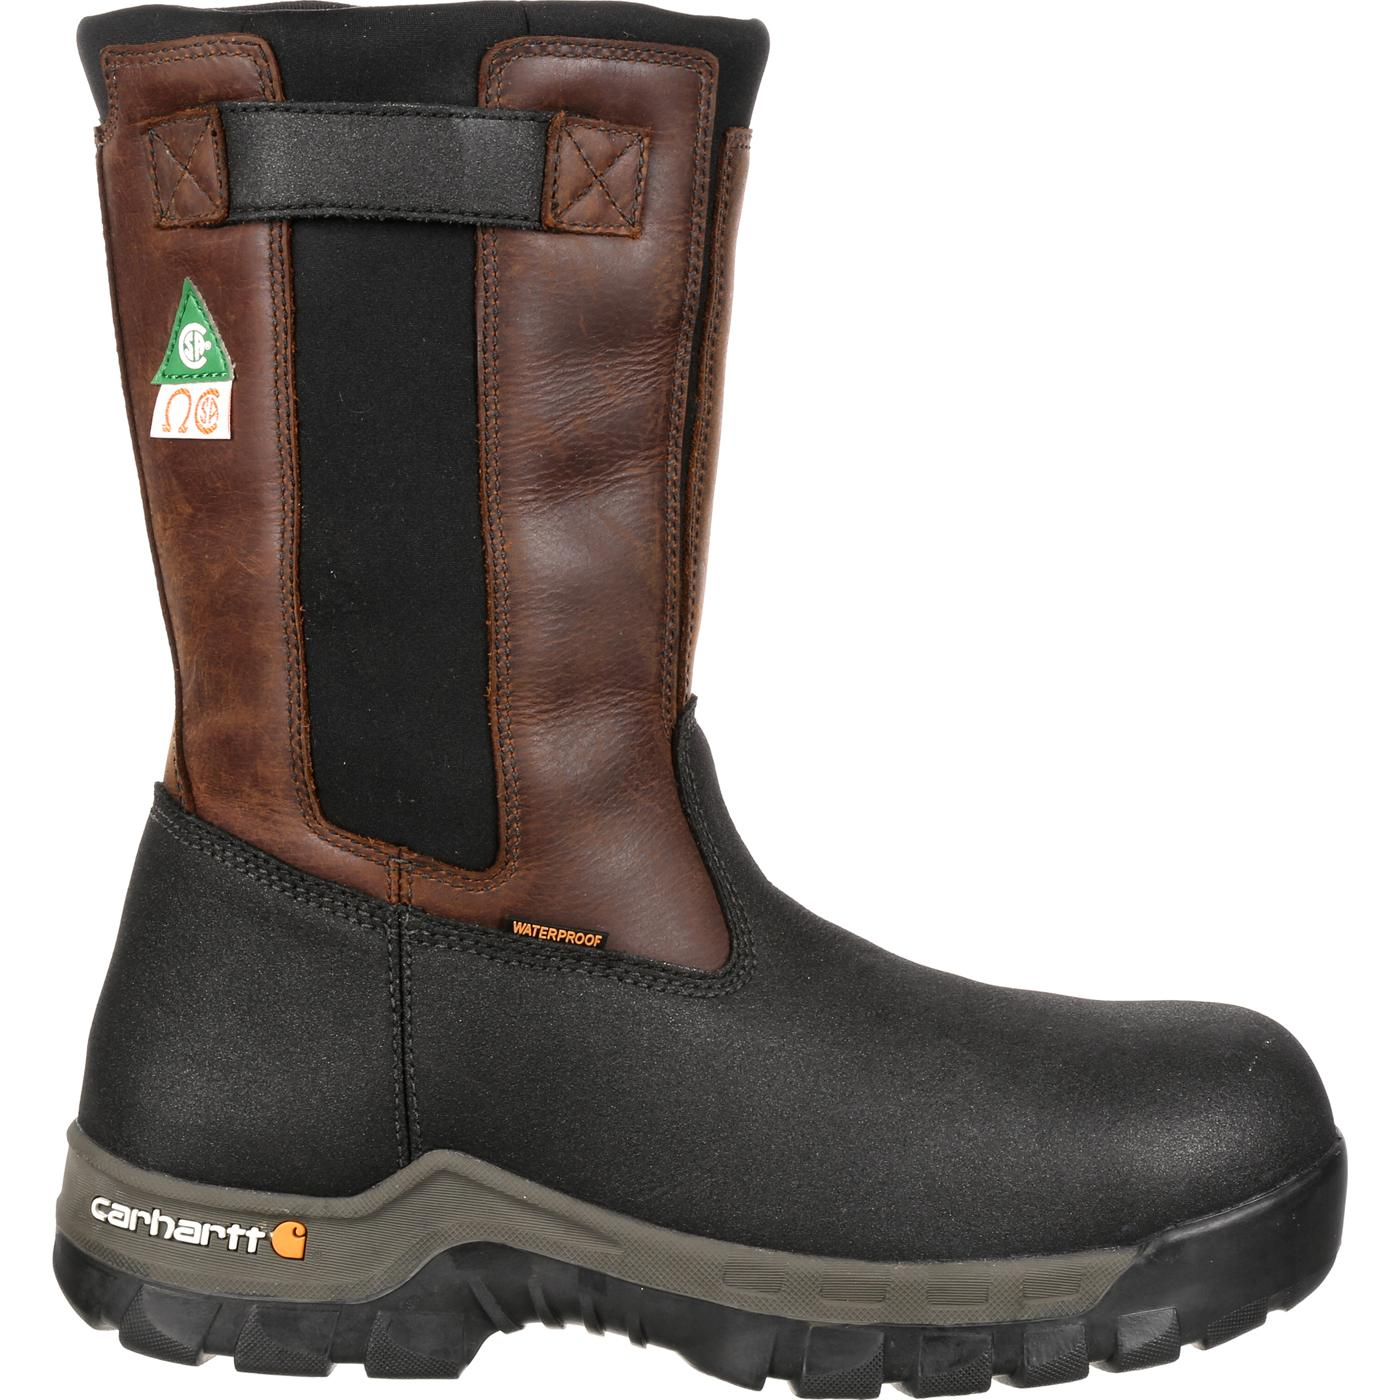 165e3ad5f6f Carhartt Rugged Flex Composite Toe Waterproof Wellington